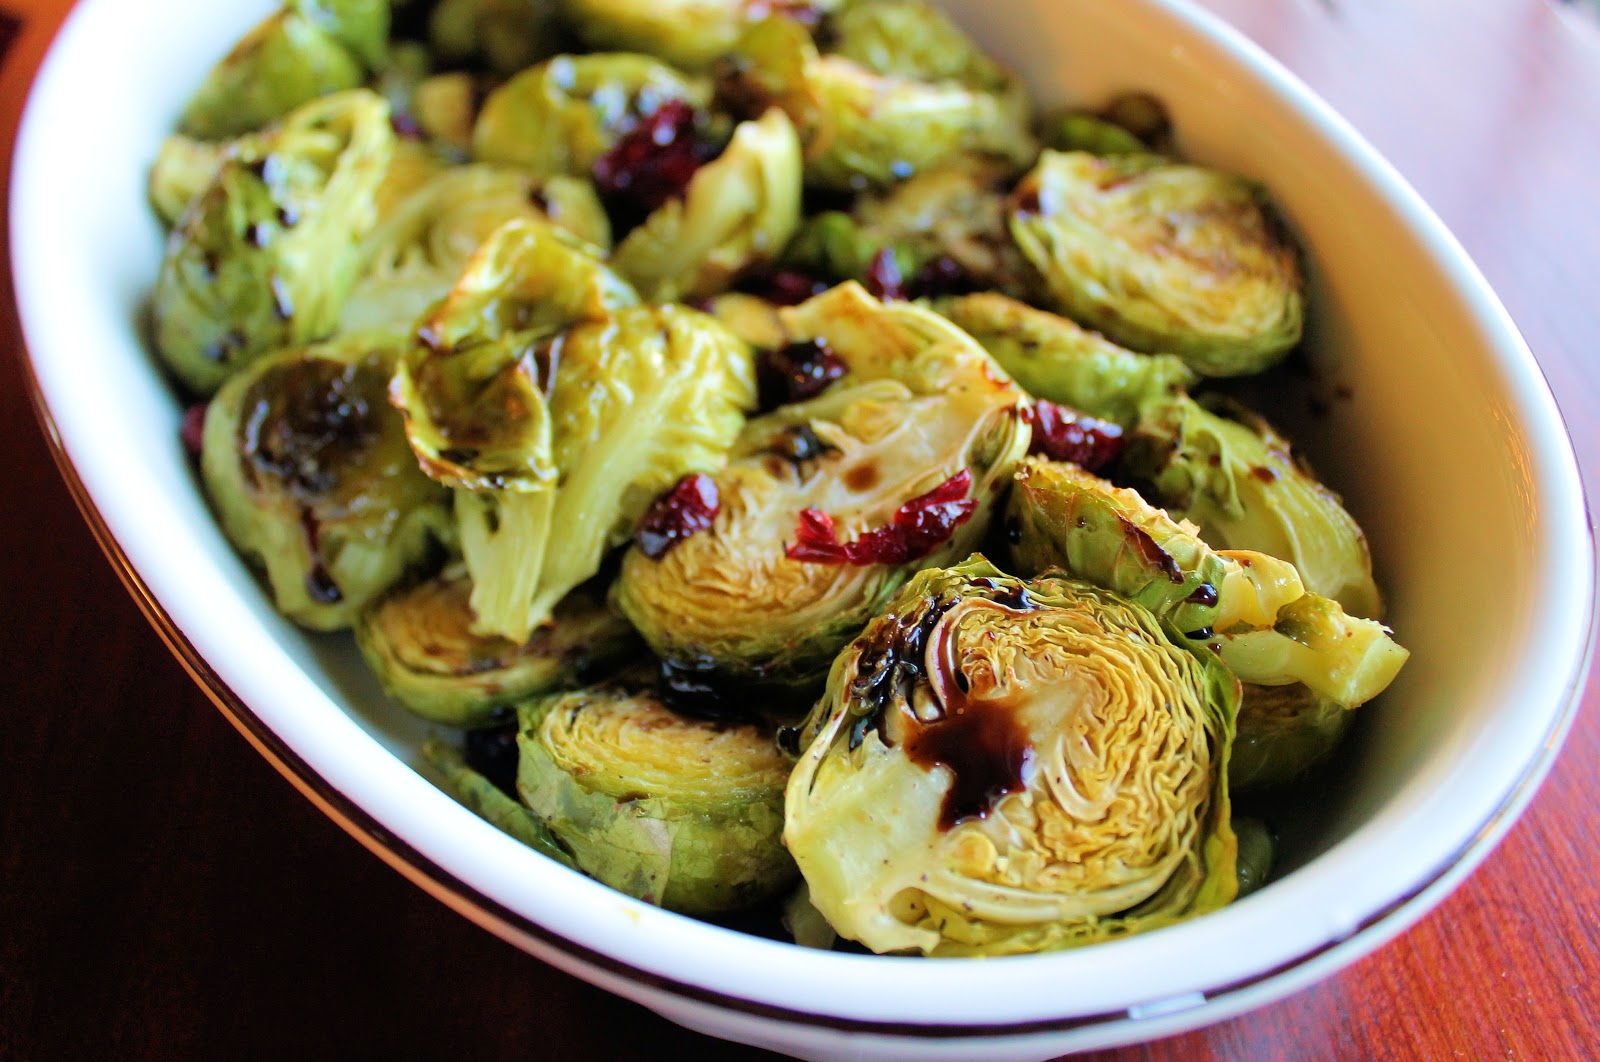 ... Brussels Sprouts with Cranberries and Balsamic Vinegar Reduction